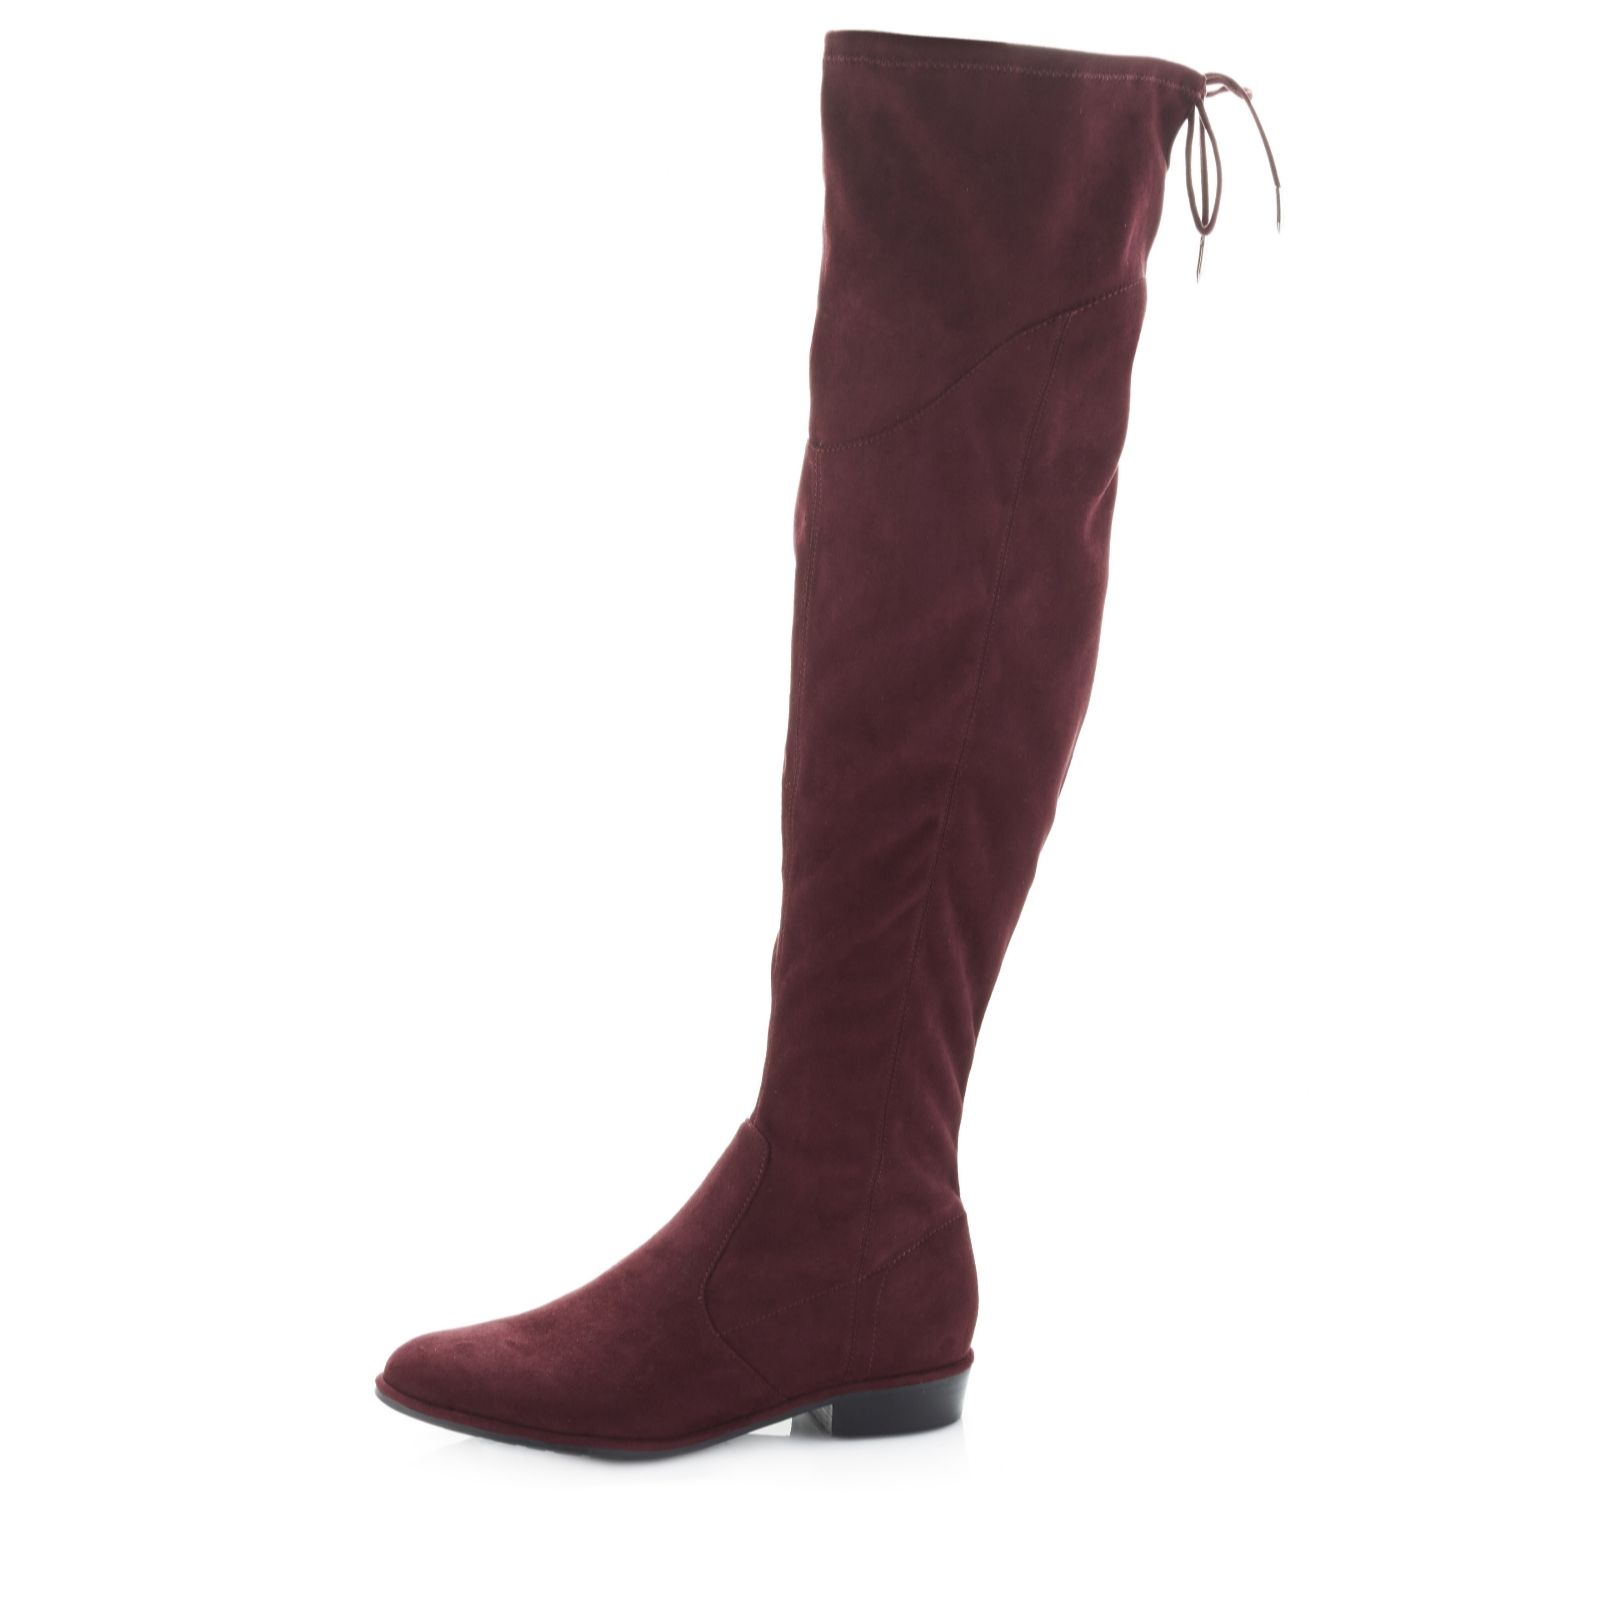 4888745cd4a Marc Fisher Hulle Over The Knee Fabric Boot with Flat Heel - QVC UK